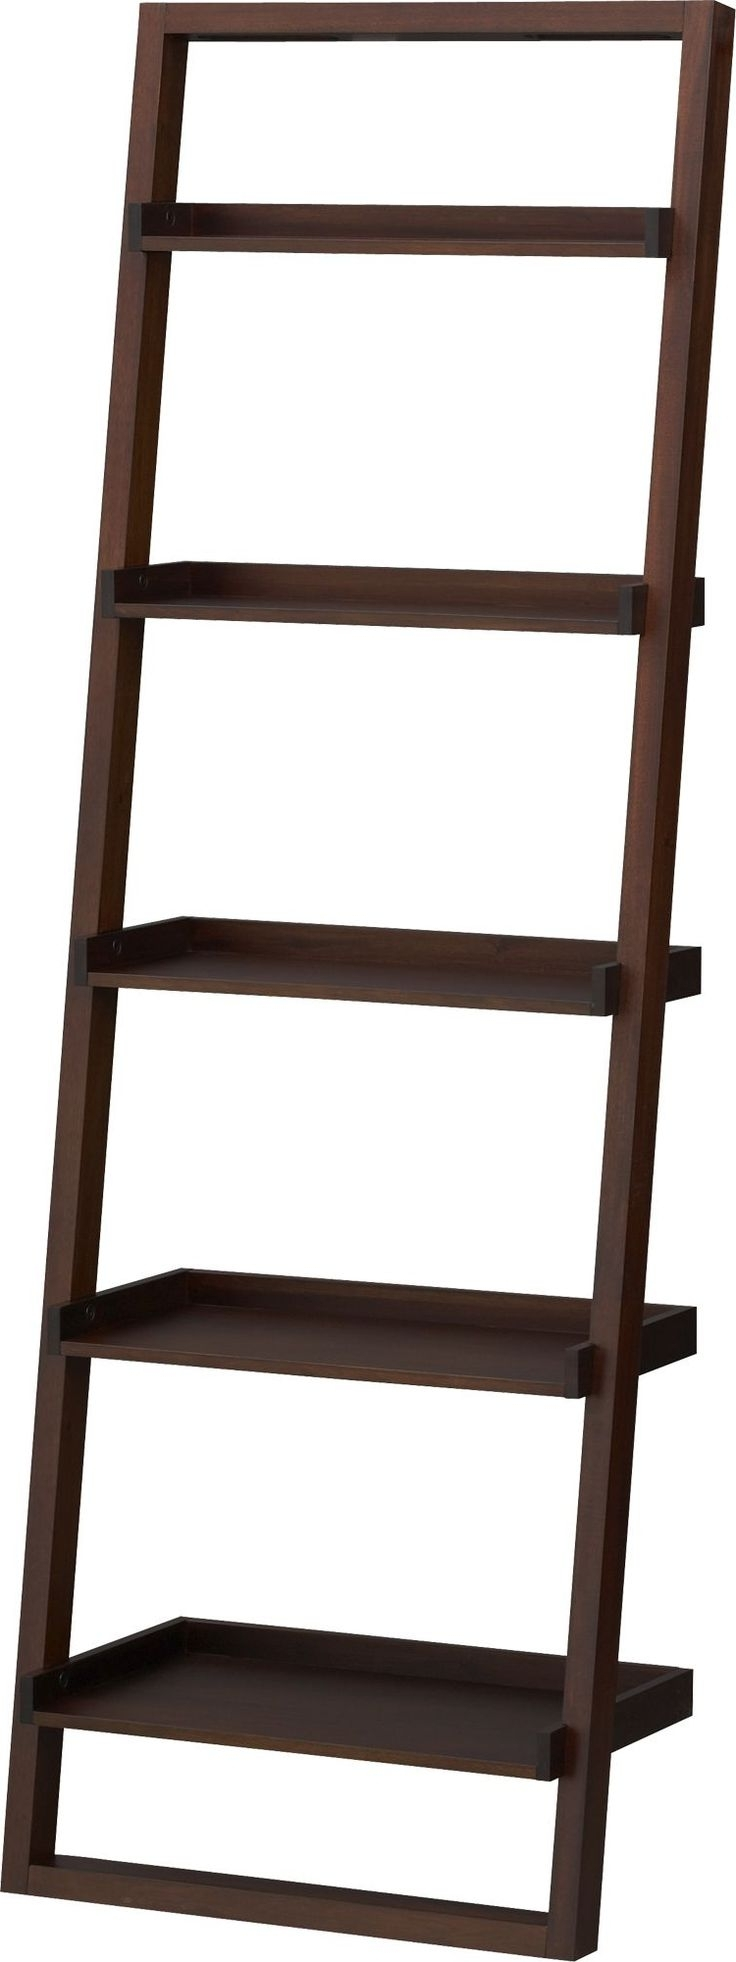 Widely Used Crate And Barrel Bookcases Pertaining To Furniture Home: Striking Crate And Barrel Leaning Bookcase Image (View 15 of 15)